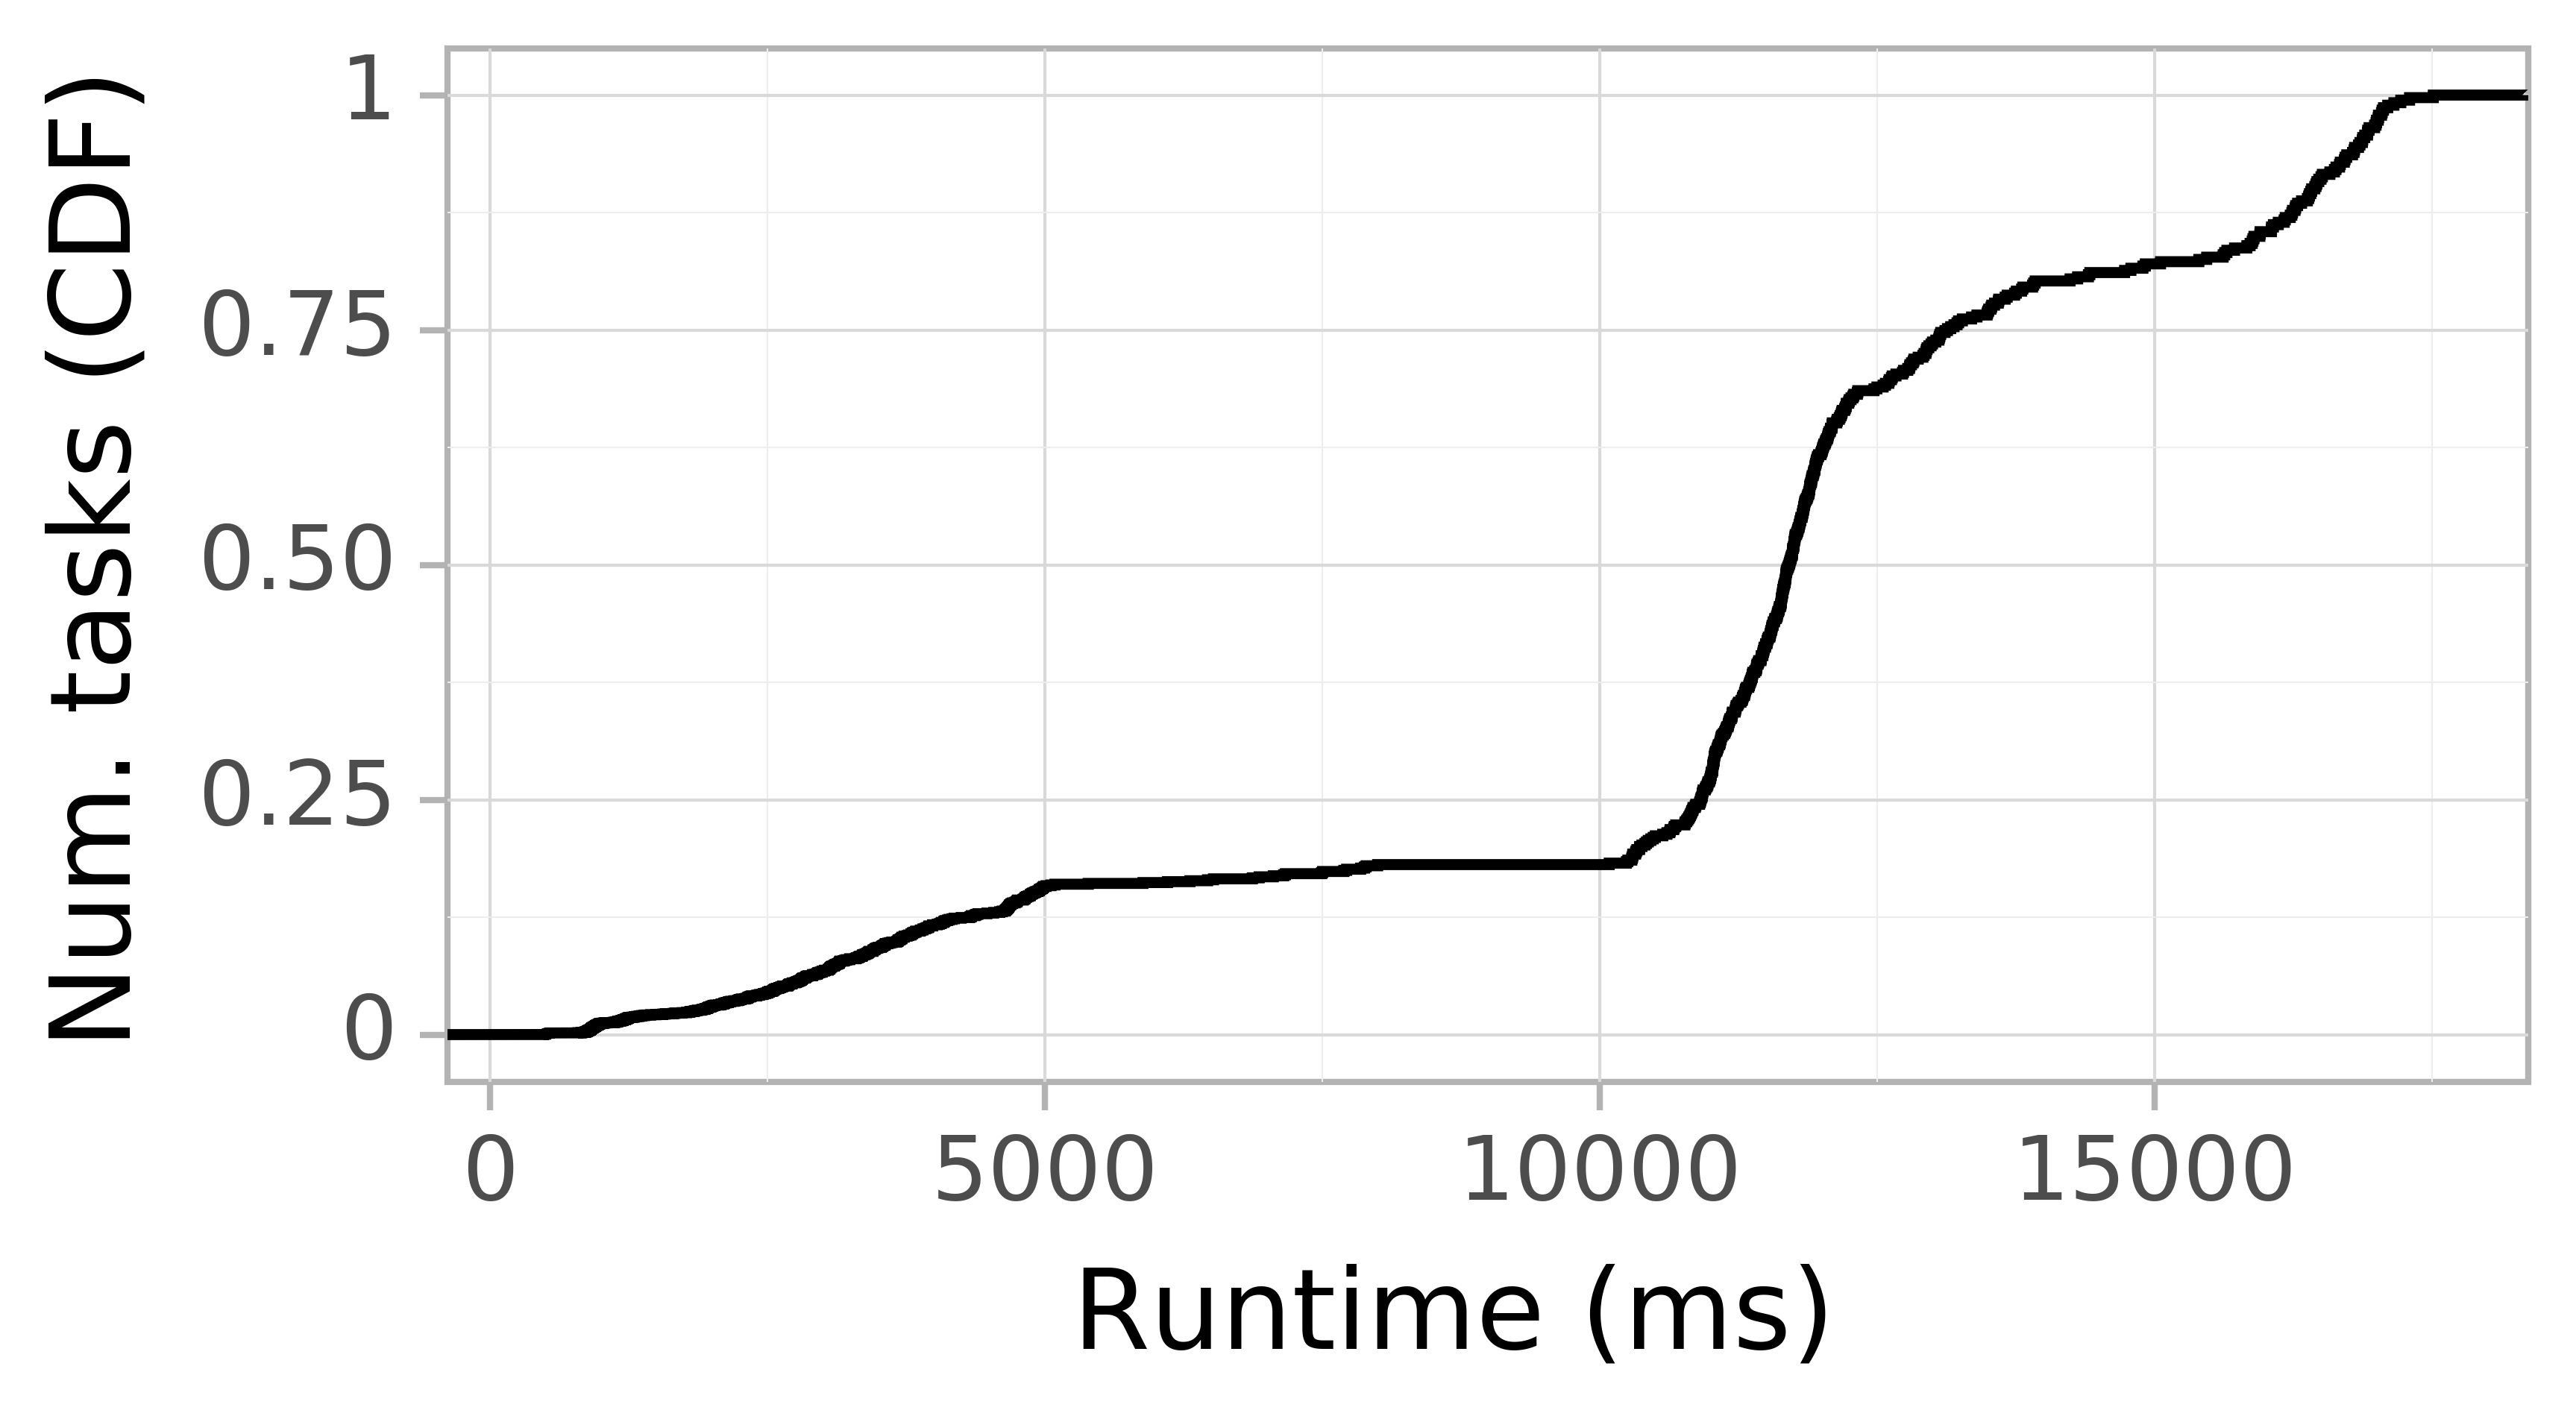 Task runtime CDF graph for the askalon-new_ee45 trace.